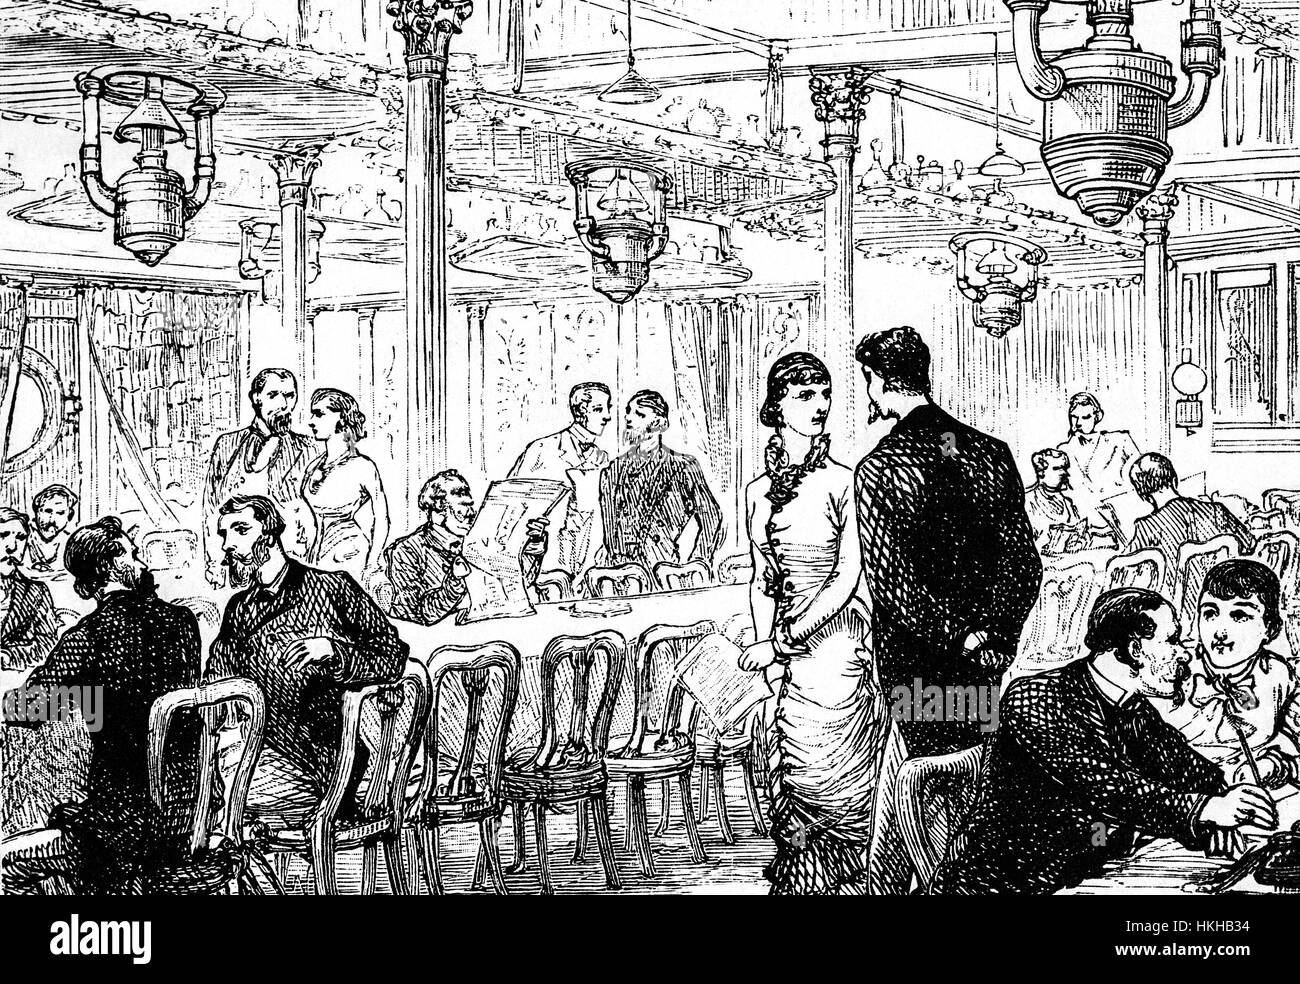 1879: Passengers in the saloon of the Cunard SS 'Scythia' making the Atlantic crossing from Liverpool, England - Stock Image